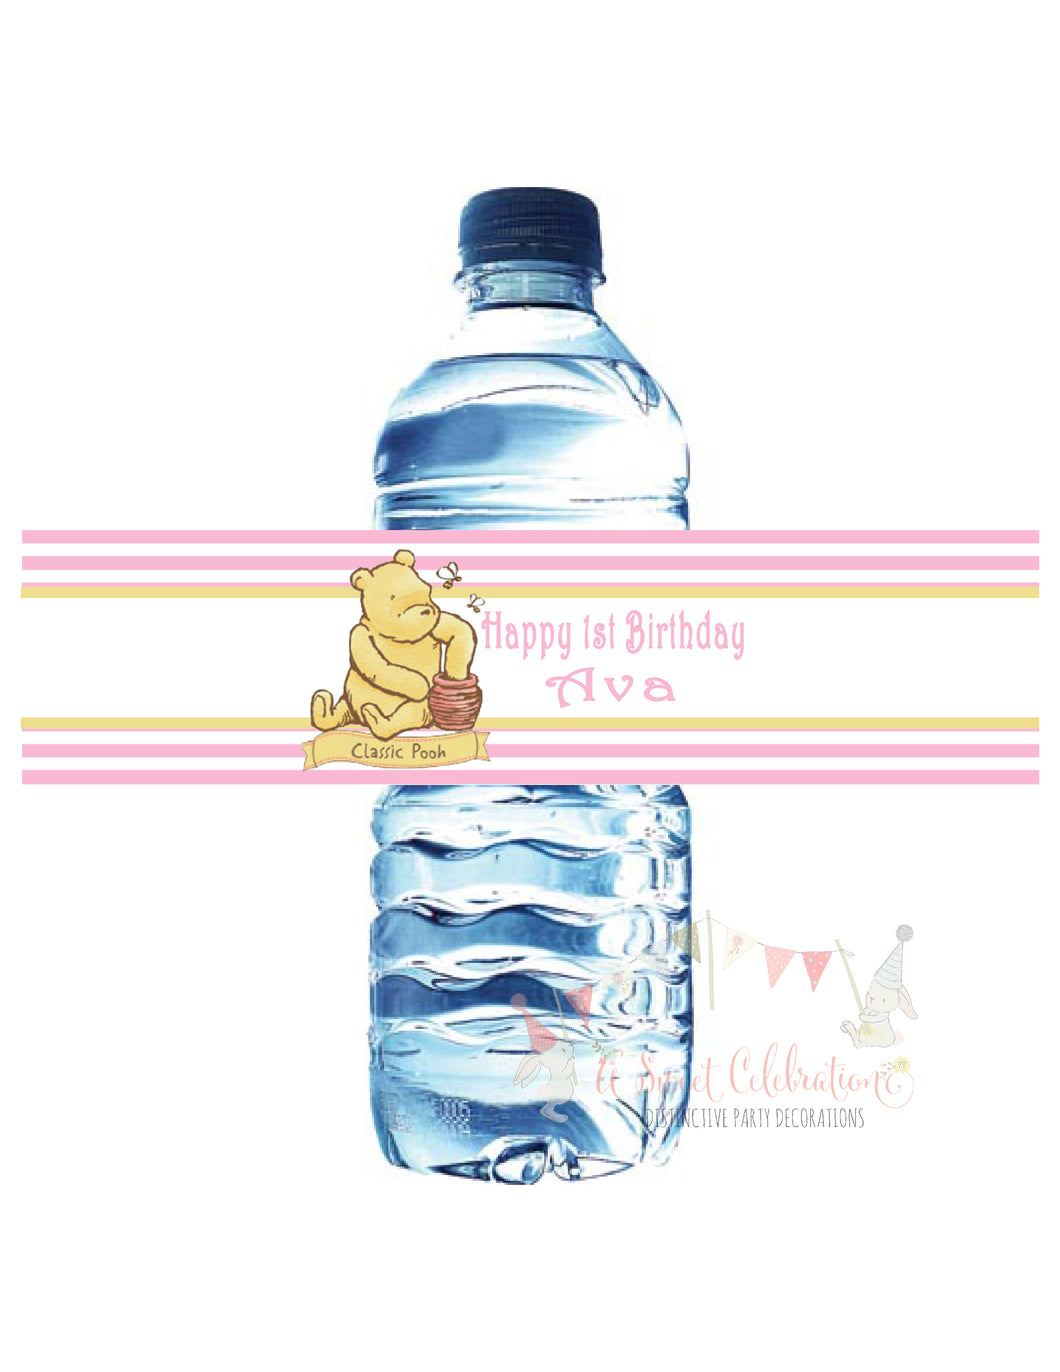 WINNIE THE POOH CLASSIC PINK - WATER BOTTLE LABEL